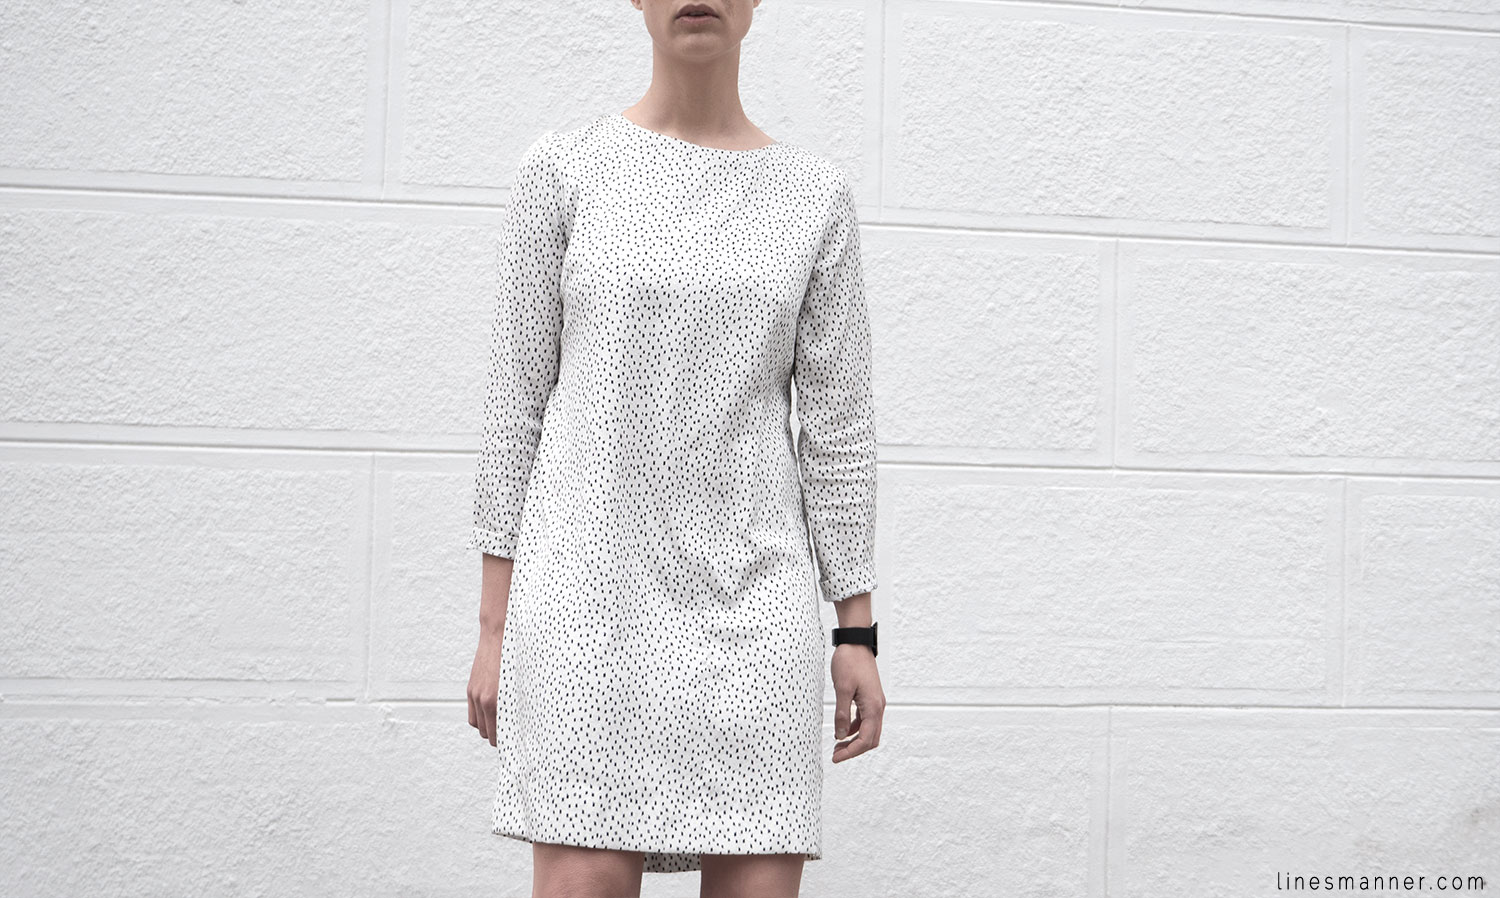 Lines-Manner-Minimal-Oldies-Dress-Sandro-Timeless-Design-Black_and_White-Details-Simplicity-Essential-Summer-Print-Quality-Wardrobe-8